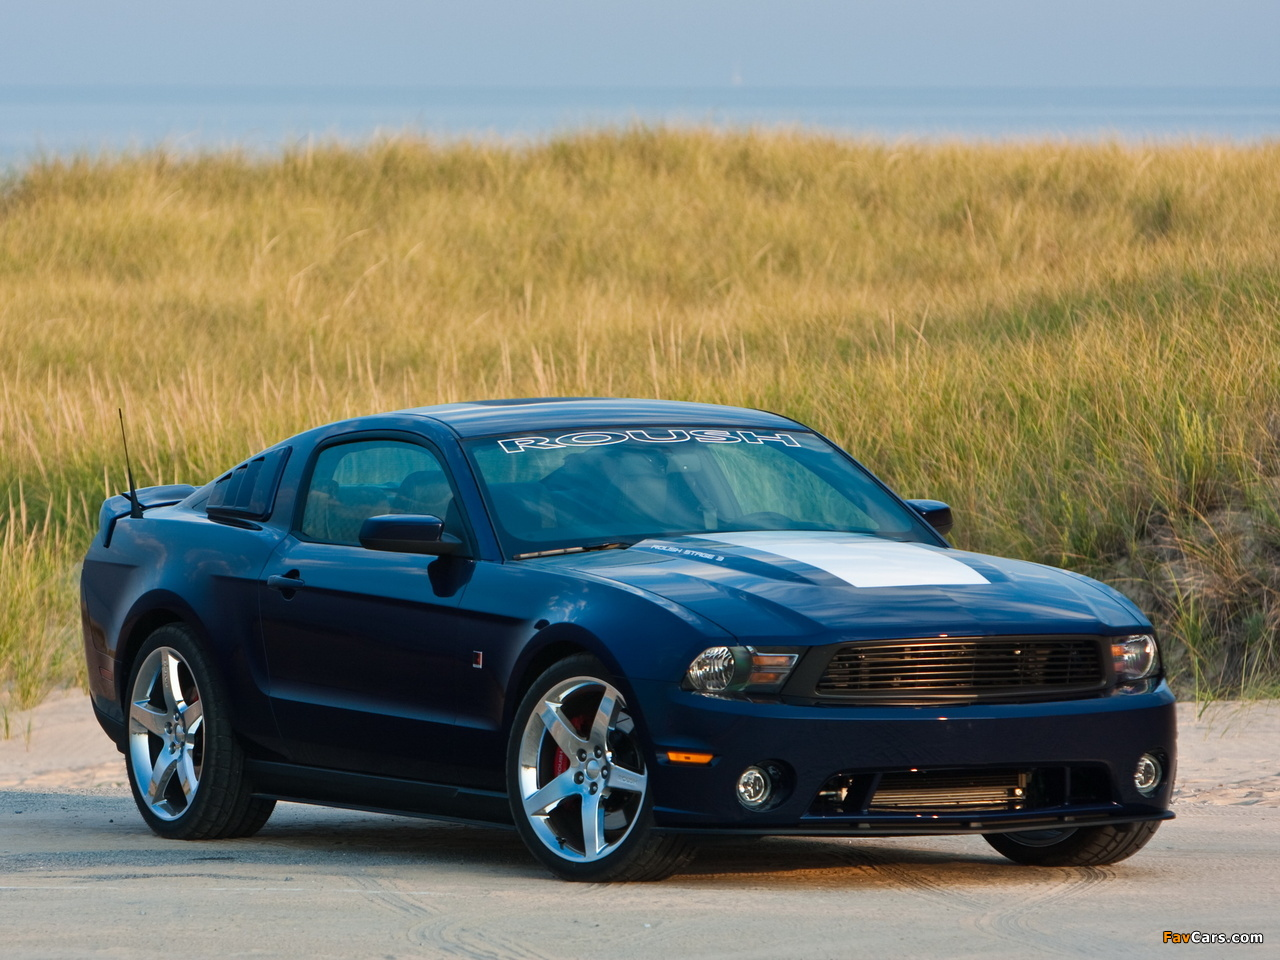 Roush Stage 3 >> Images of Roush Stage 3 2010 (1280x960)